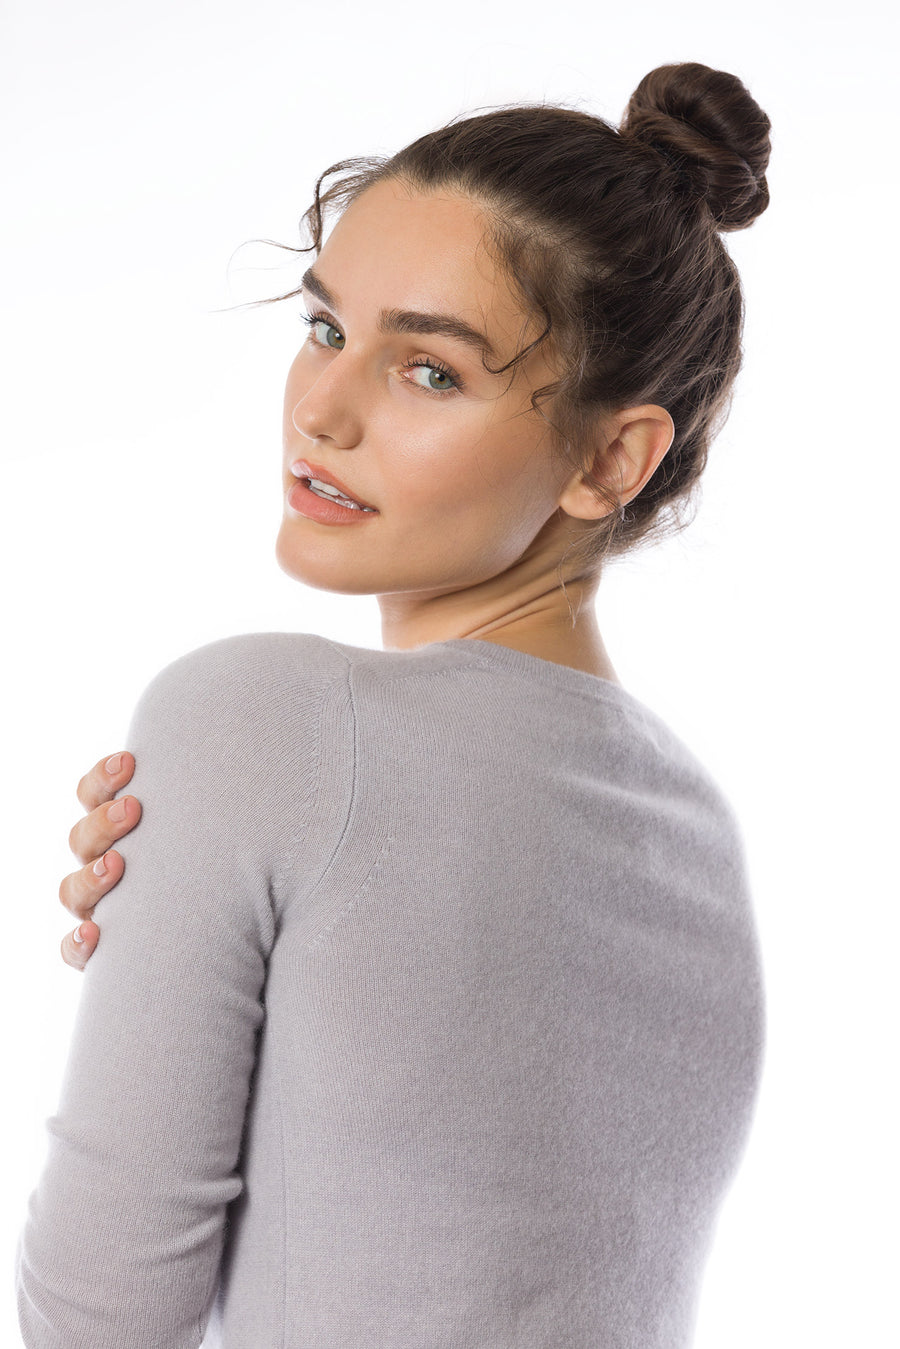 Sustainable Cashmere Crew Neck Sweater - Pearl Grey - Dongli Cashmere